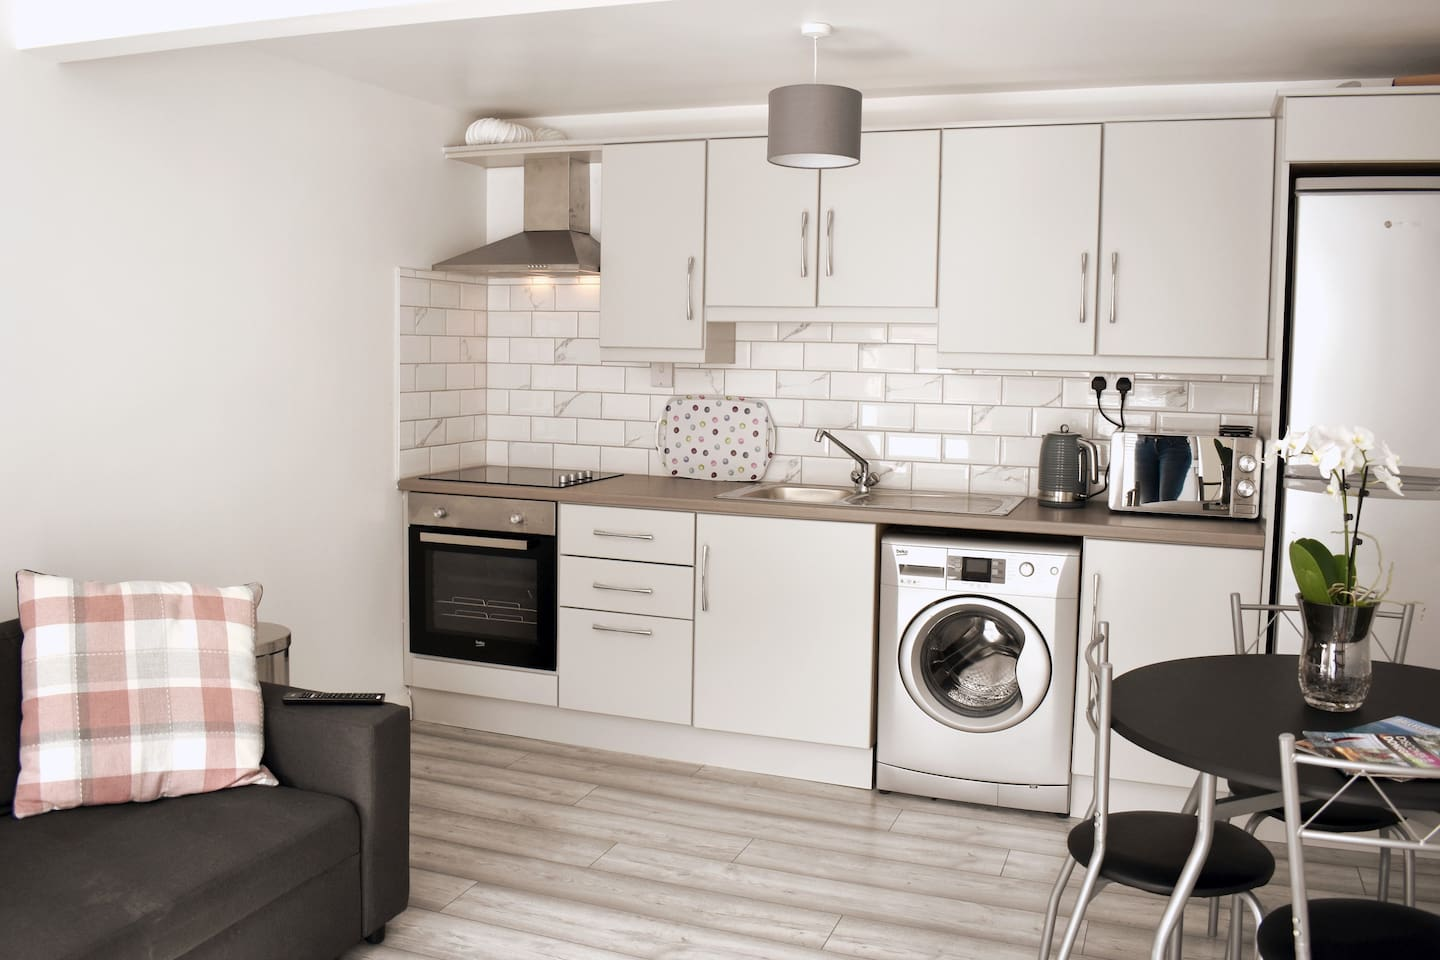 Home from home! You have access to this fully fitted & functional kitchen space in this charming ground-floor apartment. Everything that you could need to prepare a beautiful meal, or enjoy some take away from one of the fantastic local restaurants.